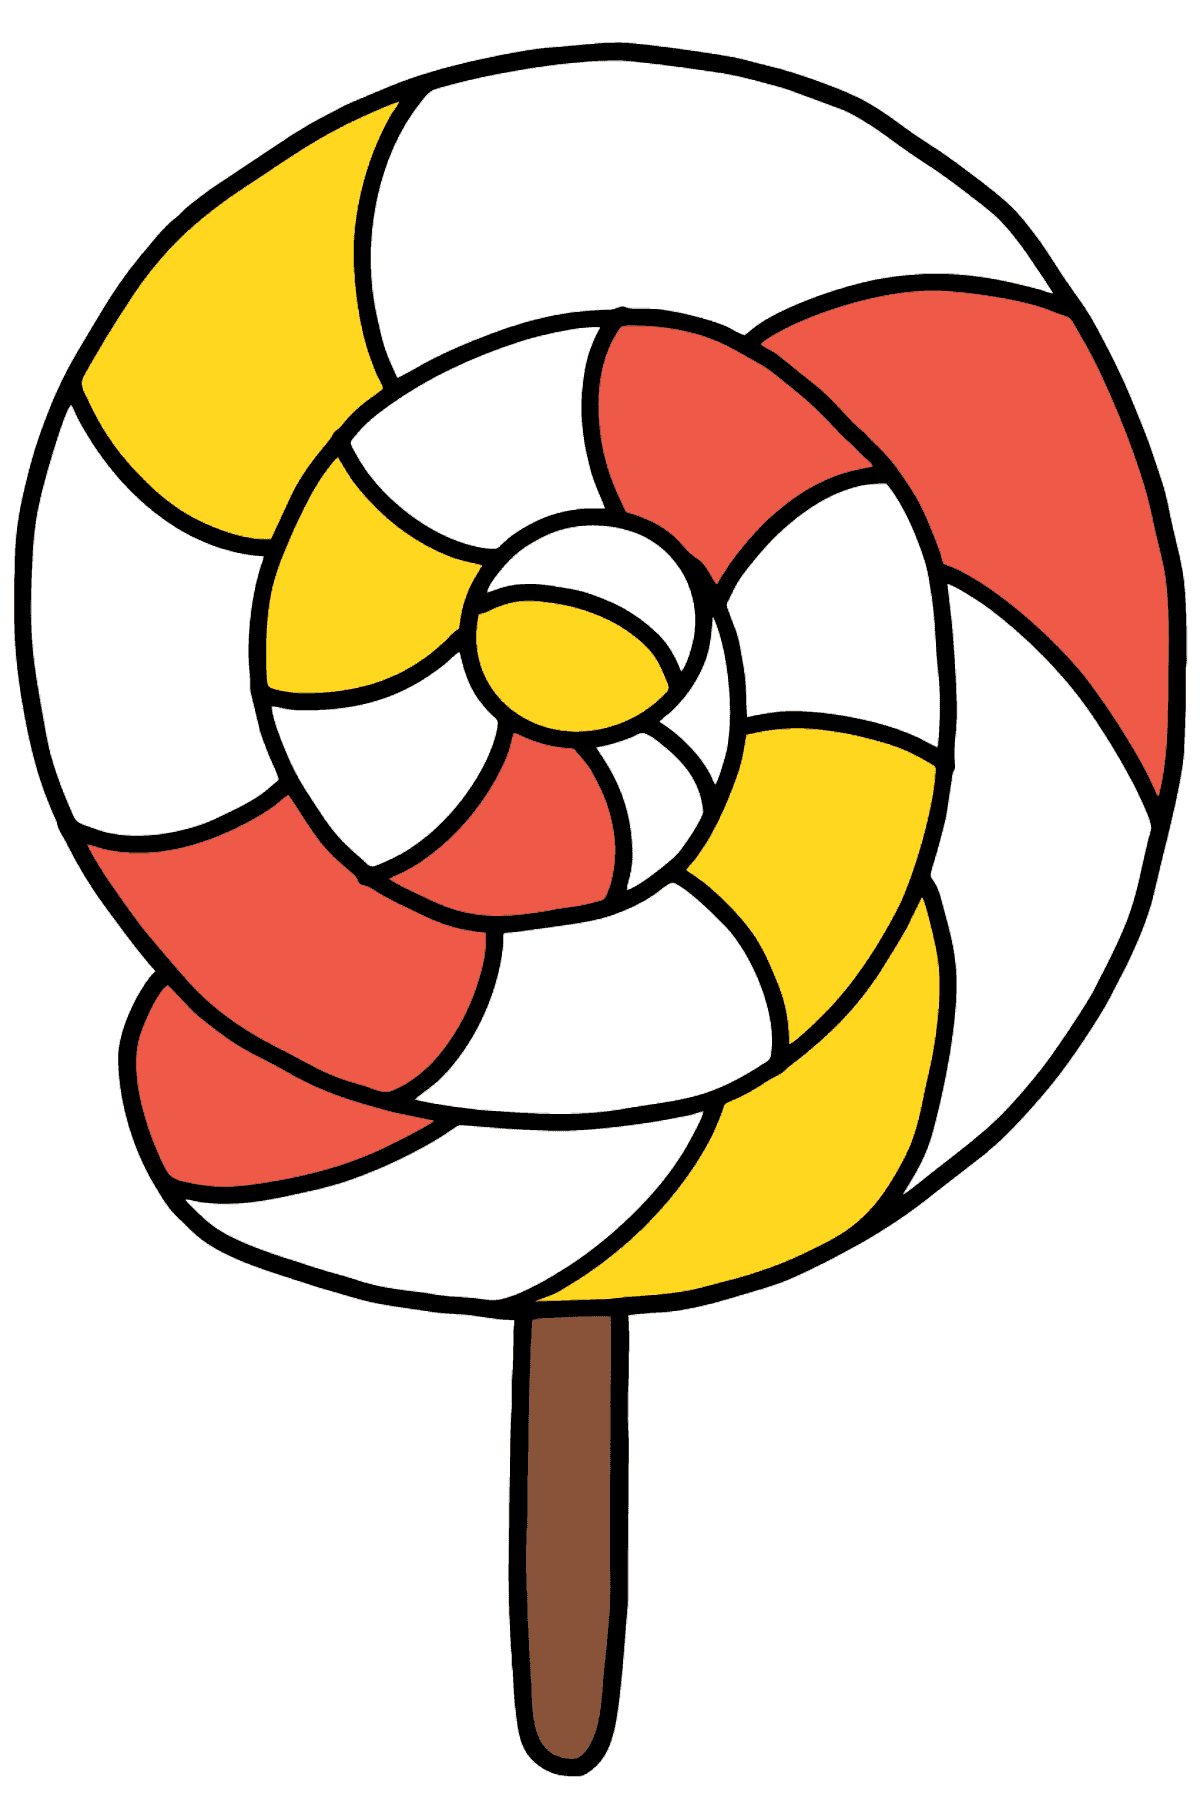 Colorful Lollipop coloring page - Coloring Pages for Kids